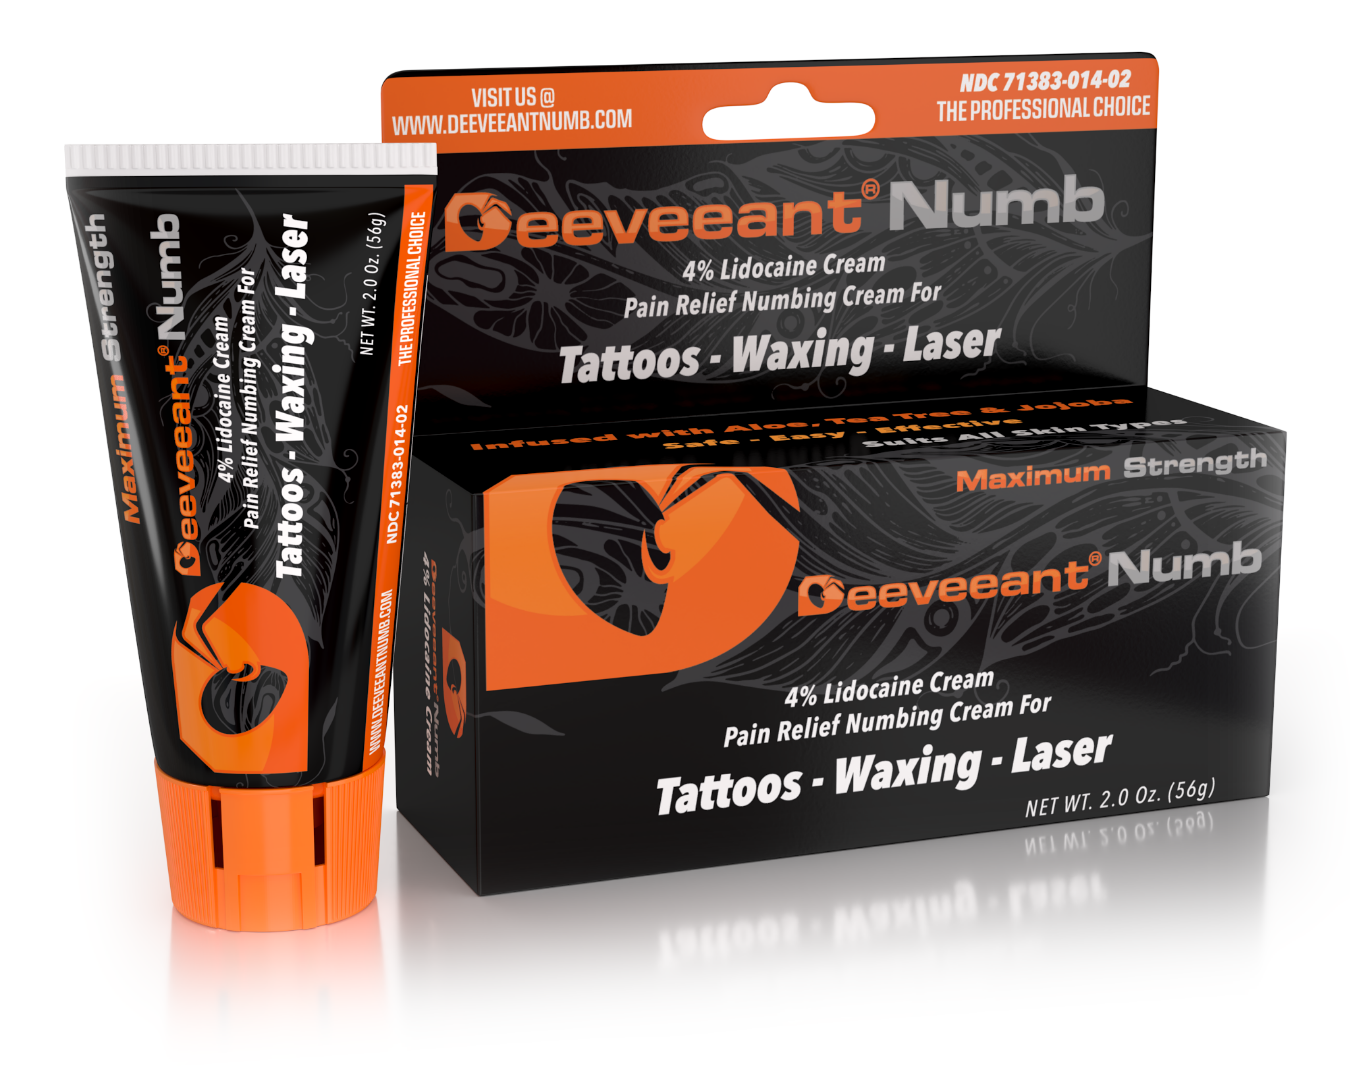 Deeveeant Numbing Cream